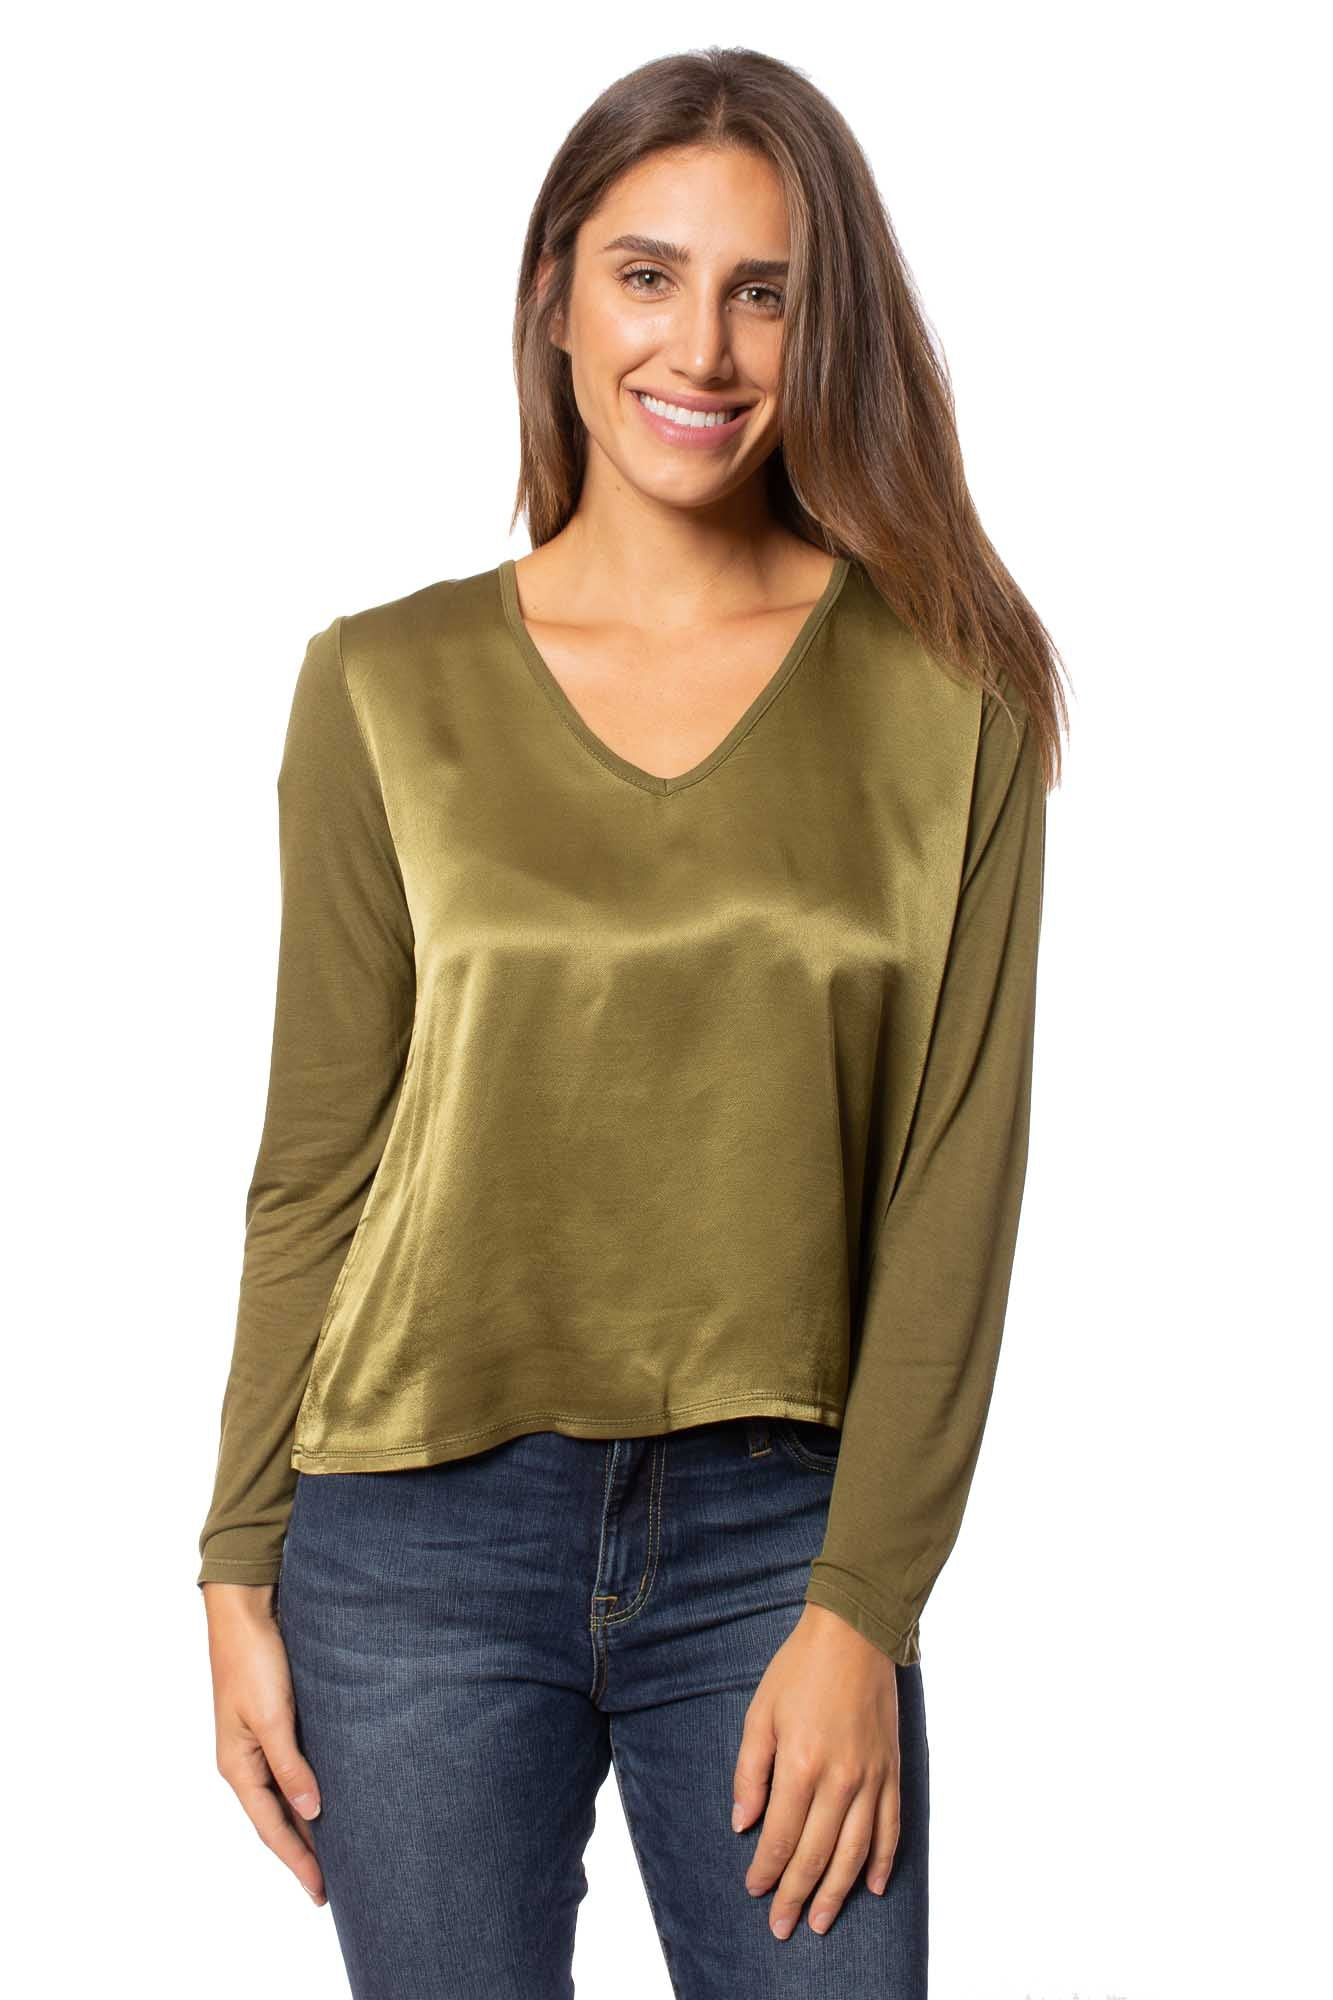 XCVI - Reflective Green V Neck Blouse (13463, Reflective Green) alt view 1